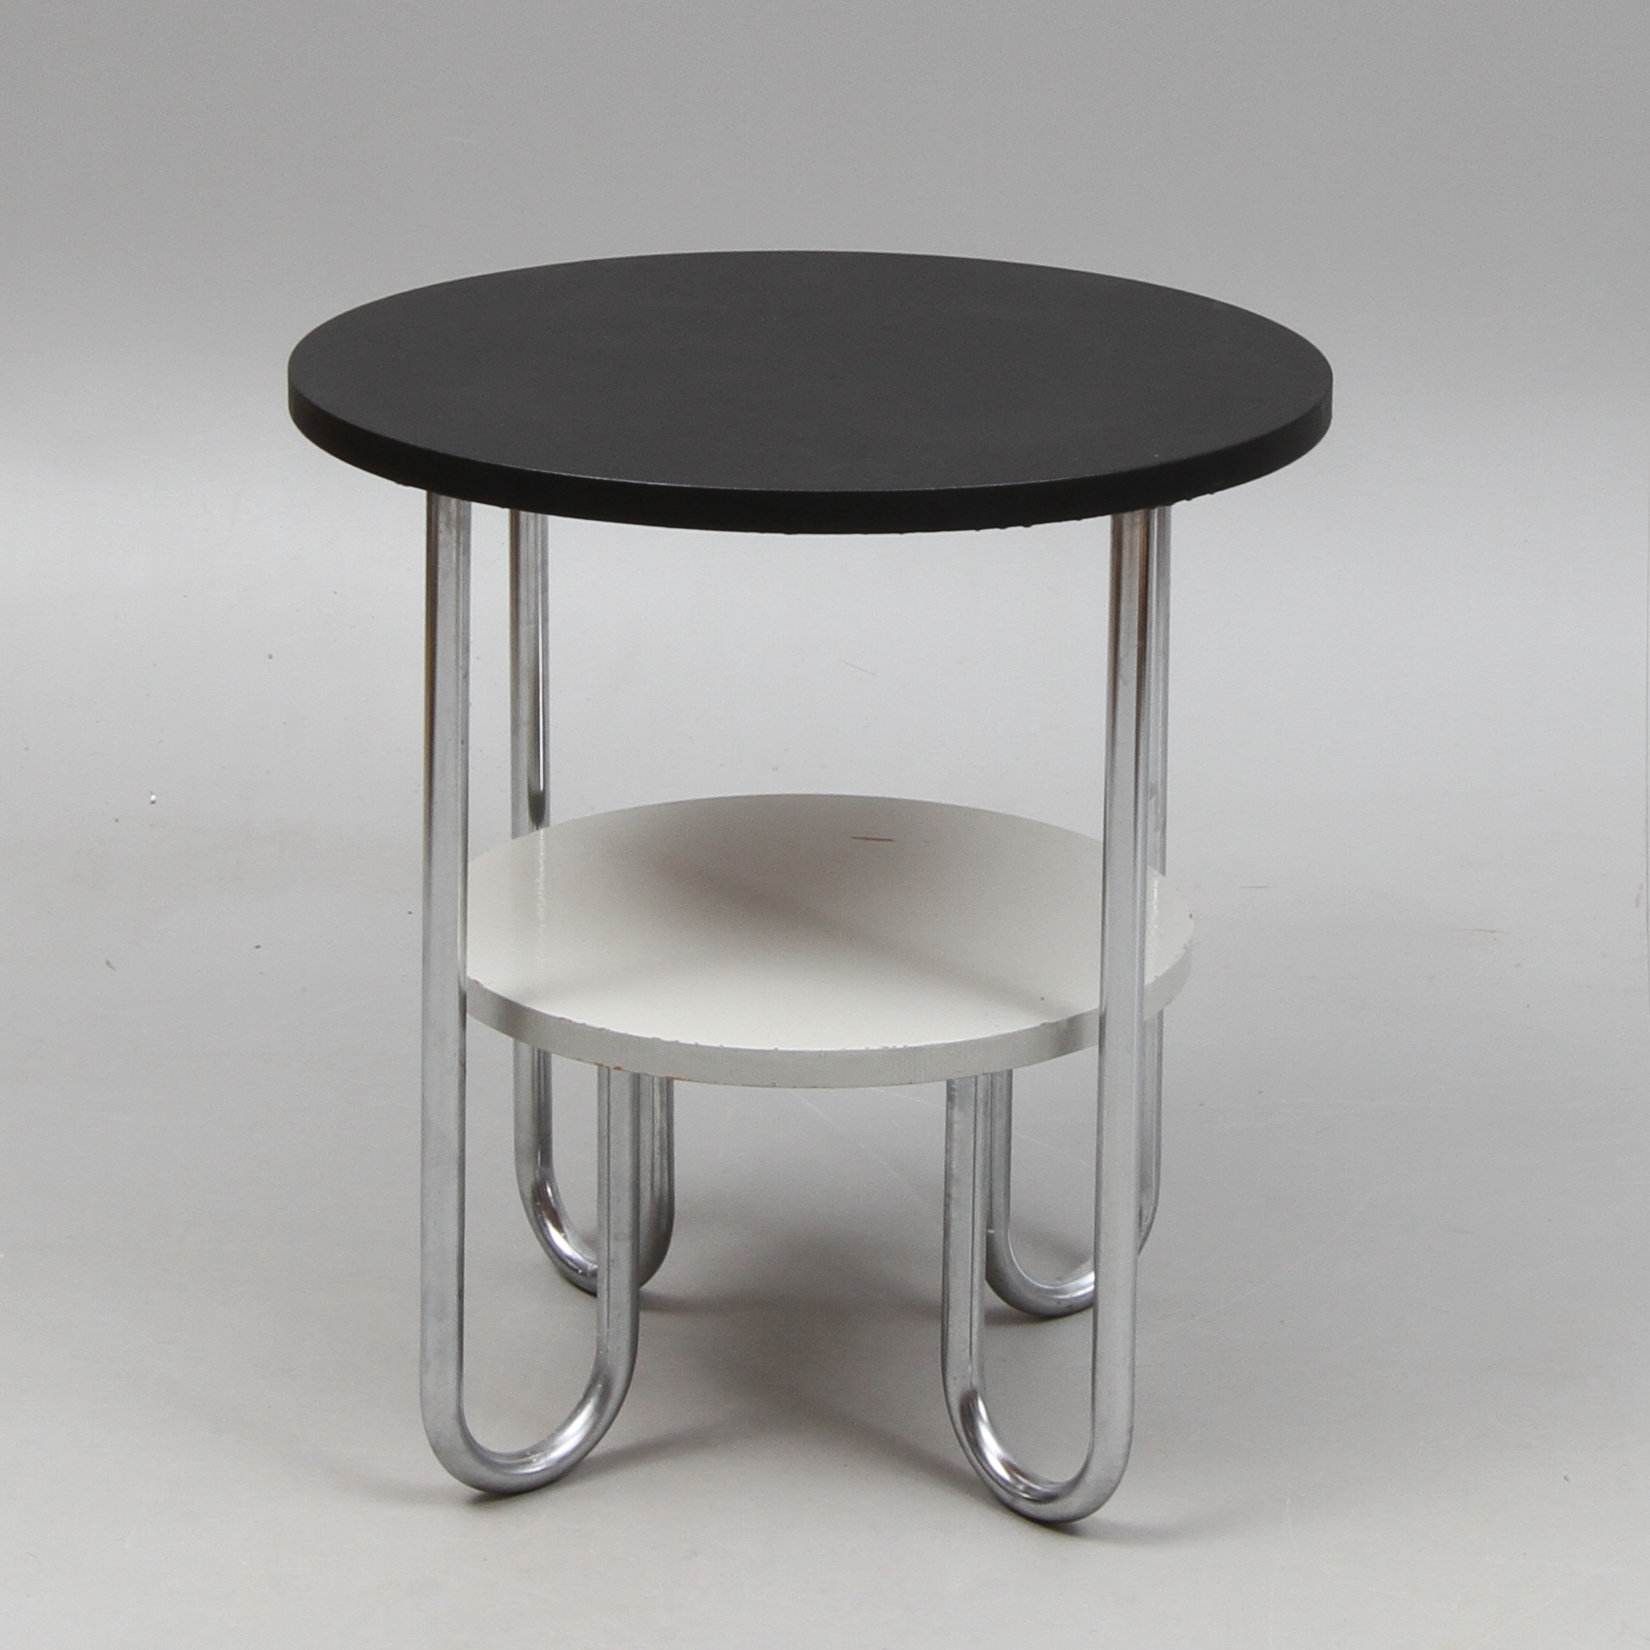 SIDOBORD, funkis, 1930s. Furniture Tables Auctionet